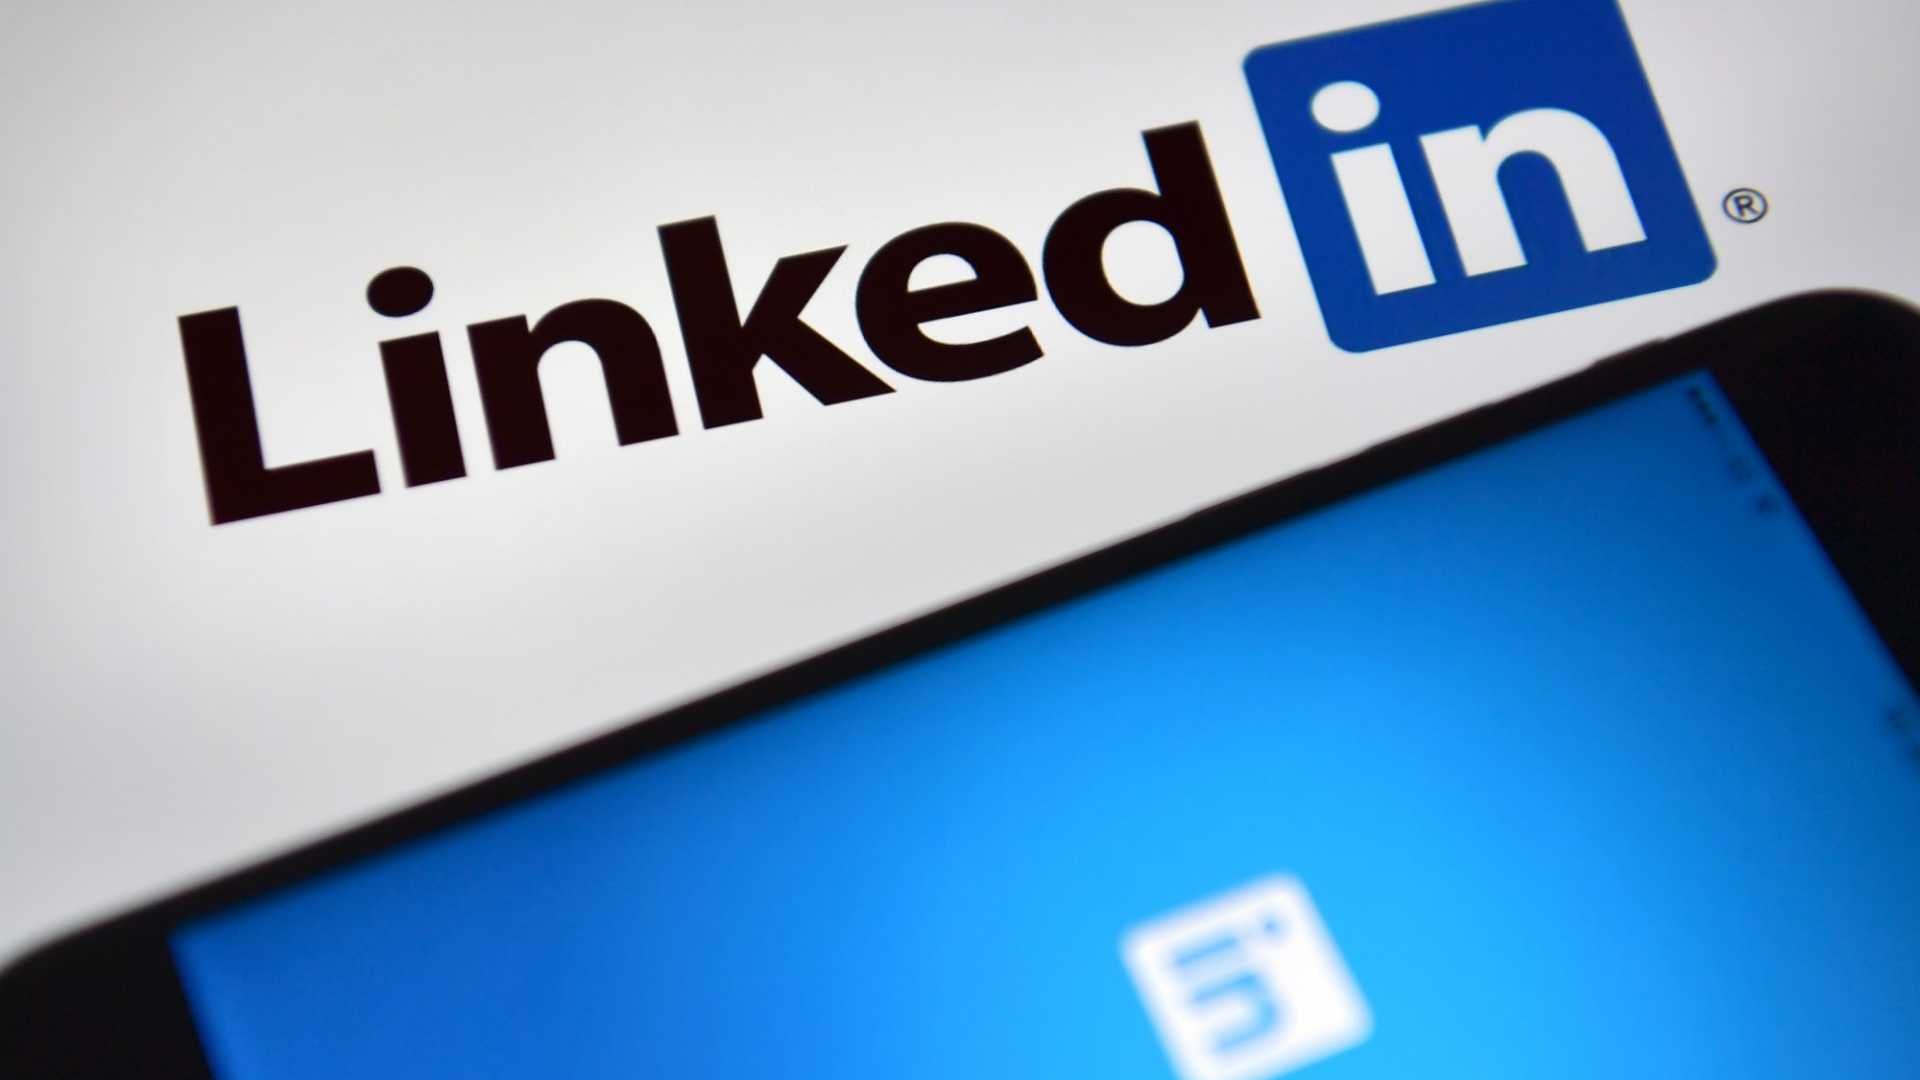 What Do Women (and Men) Want at Work? LinkedIn Looked at 'Billions of Interactions' and Reached 8 Key Conclusions